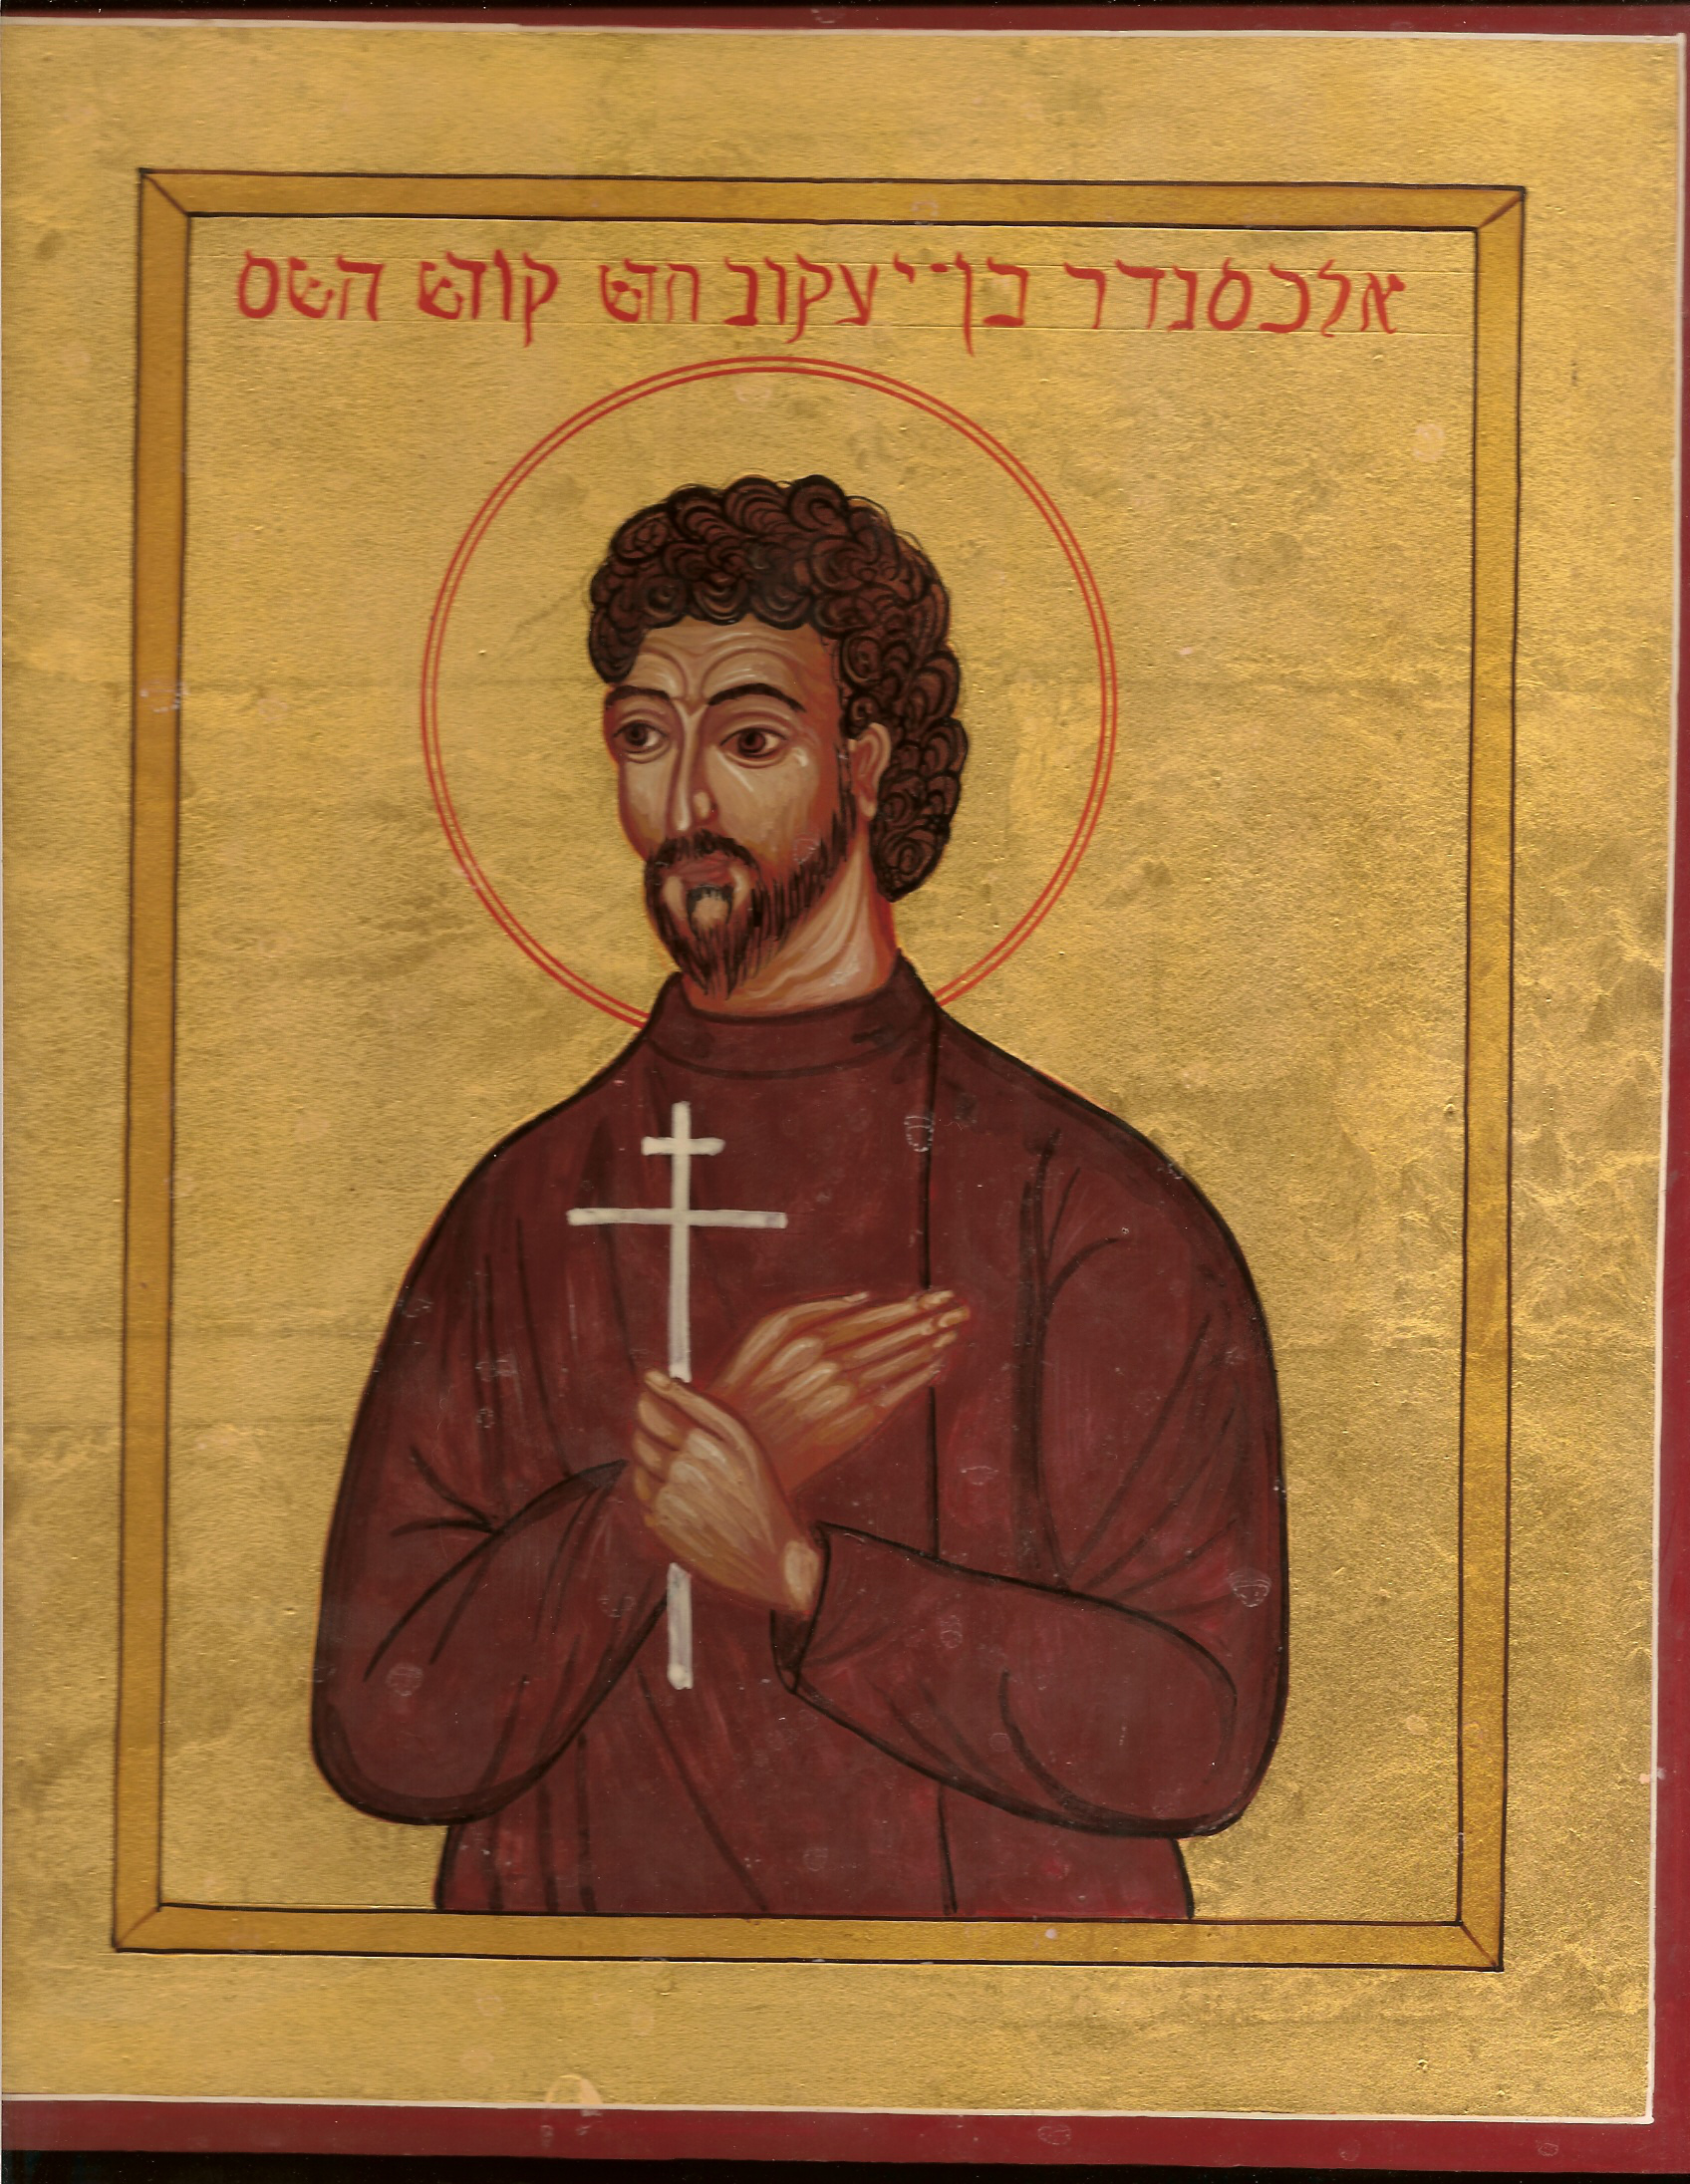 When do prayers for diseases help the Orthodox?